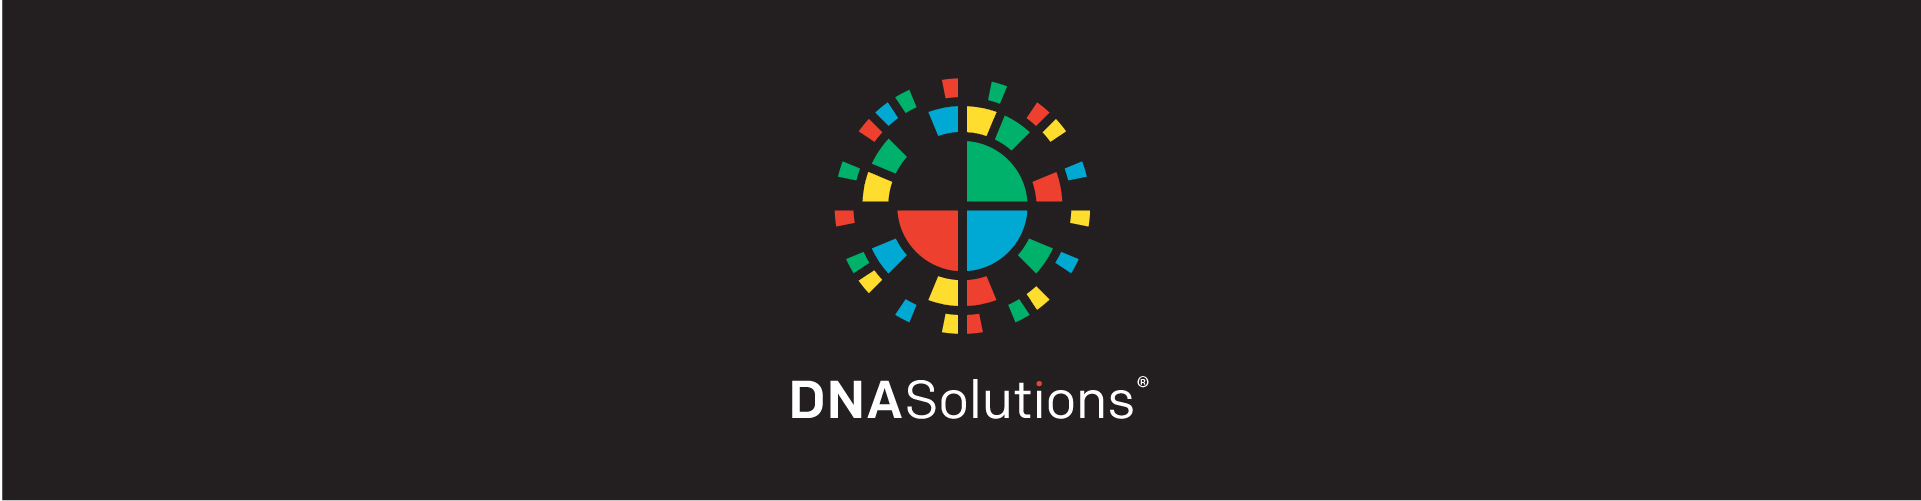 Homepage Slider DNA Solutions Logo Black Background